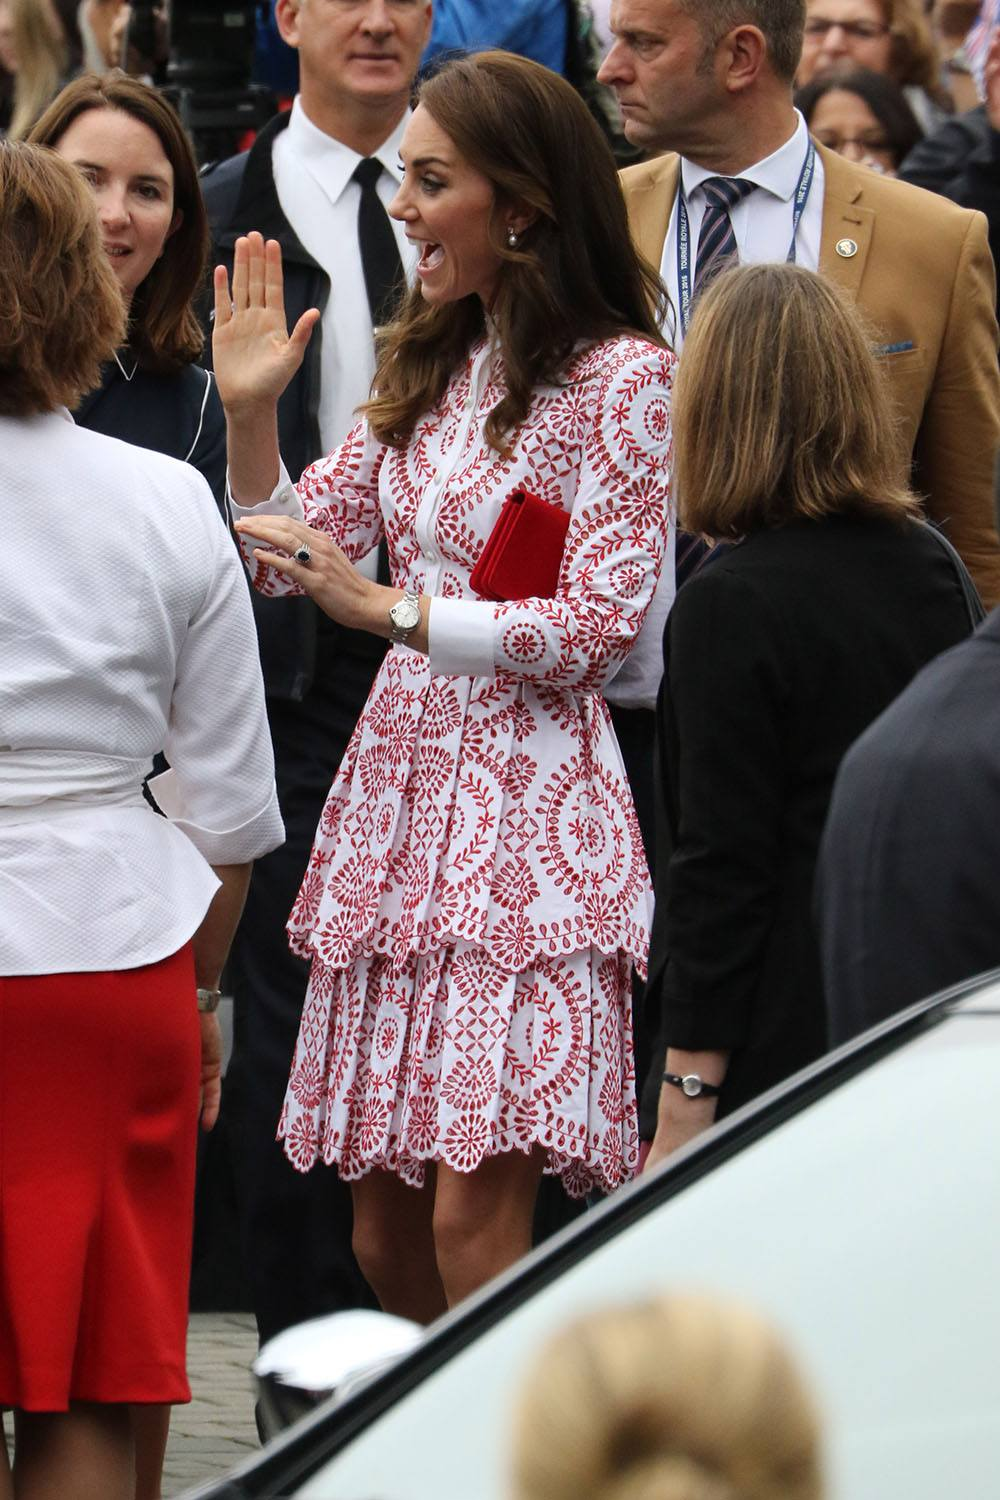 Kate enjoying the crowds in Vancouver (Lindsay Barker/Daily Hive)